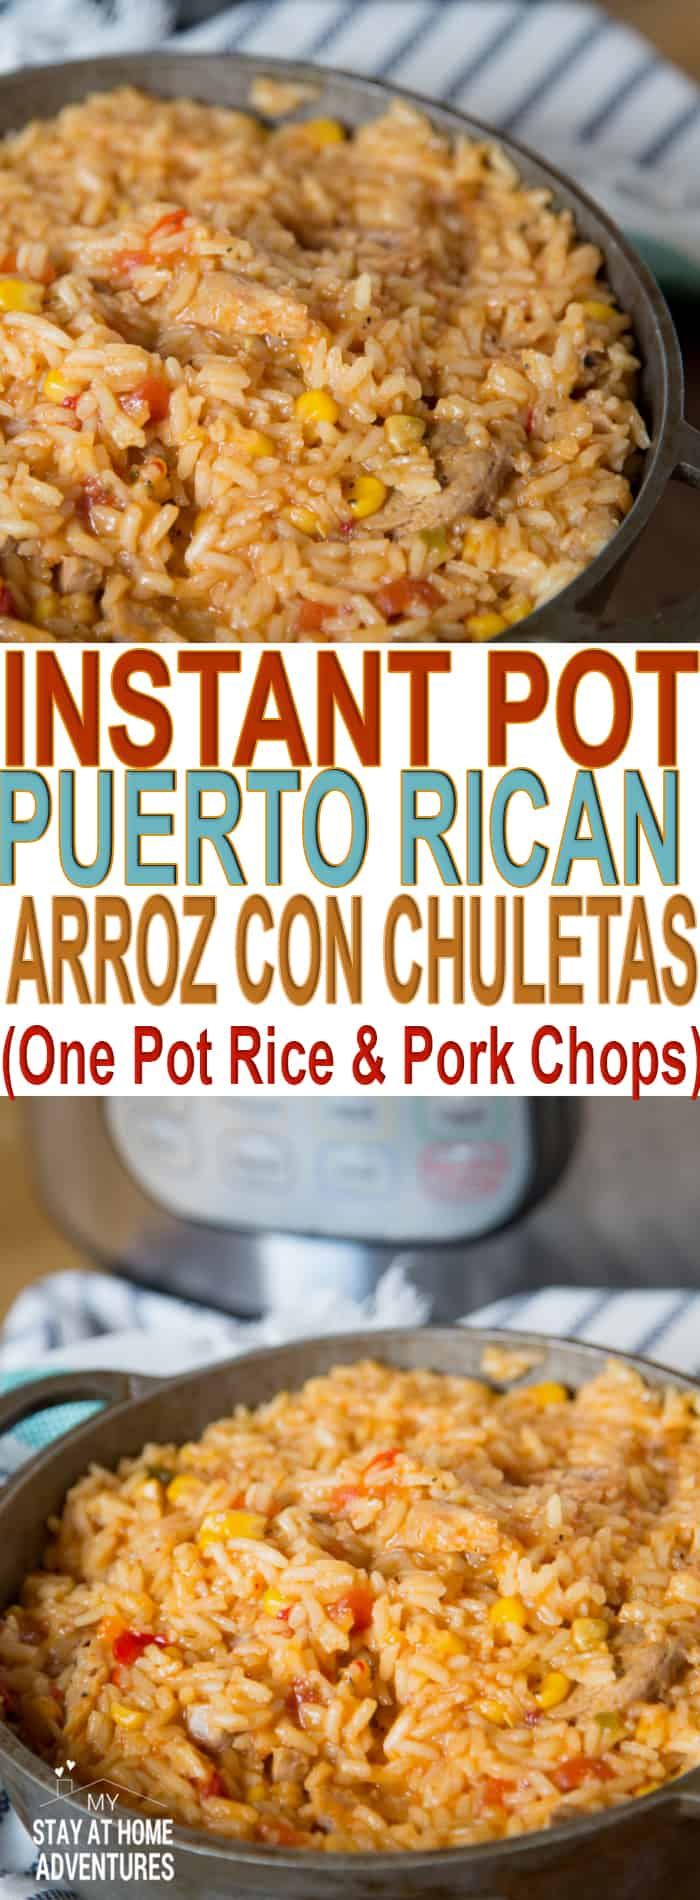 Learn how to make this one pot Instant Pot Rice and Pork Chops recipe or Puerto Rican Arroz con Chuletas. A fast meal and easy to make.